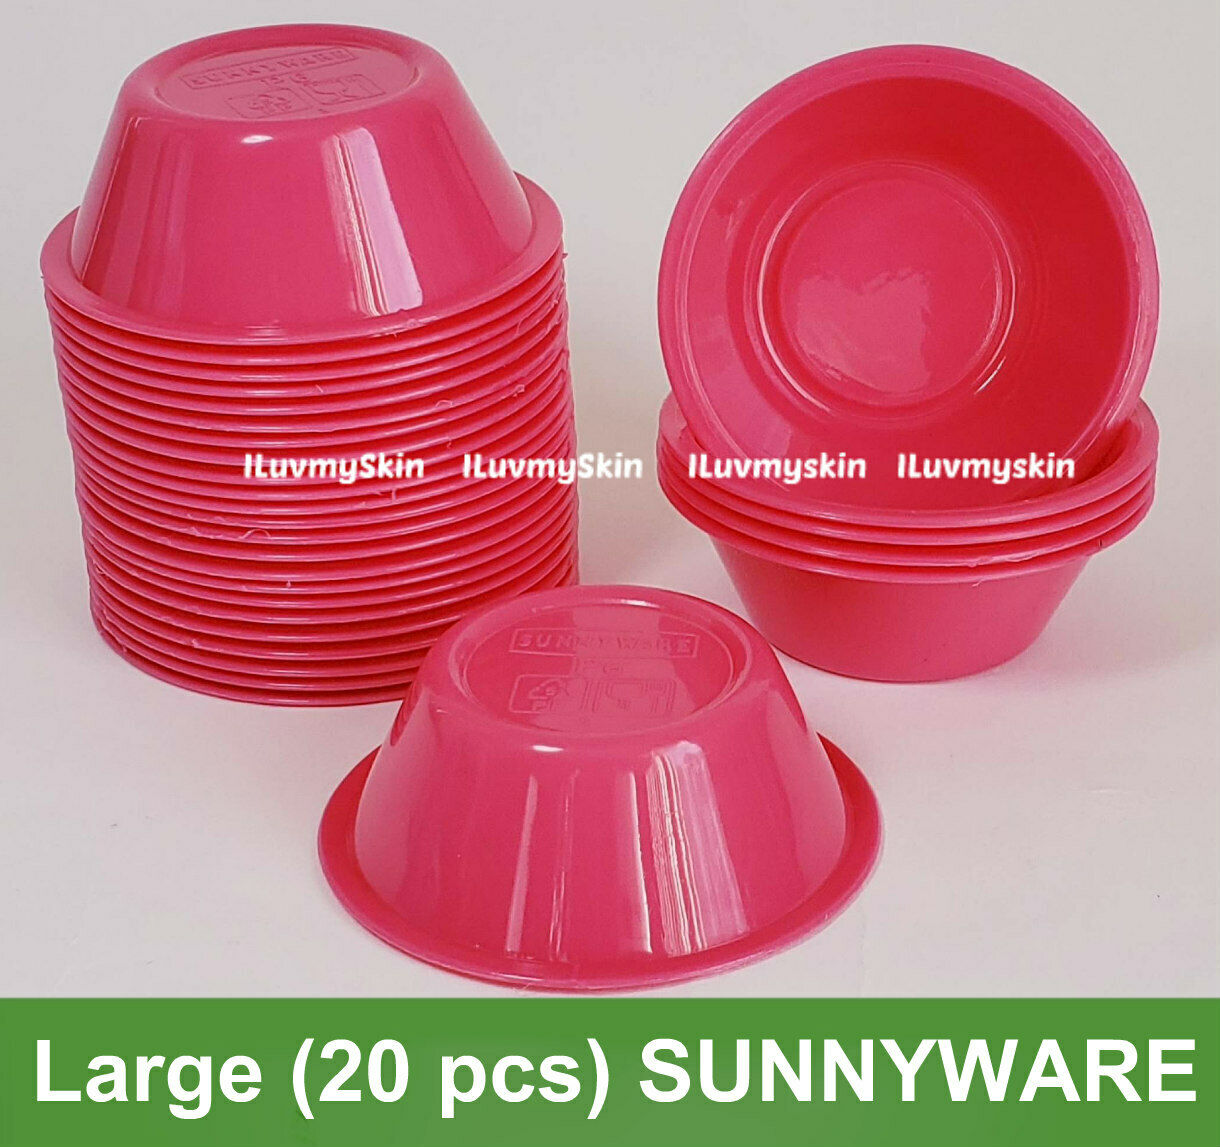 Large (20 pieces) SUNNYWARE Brand